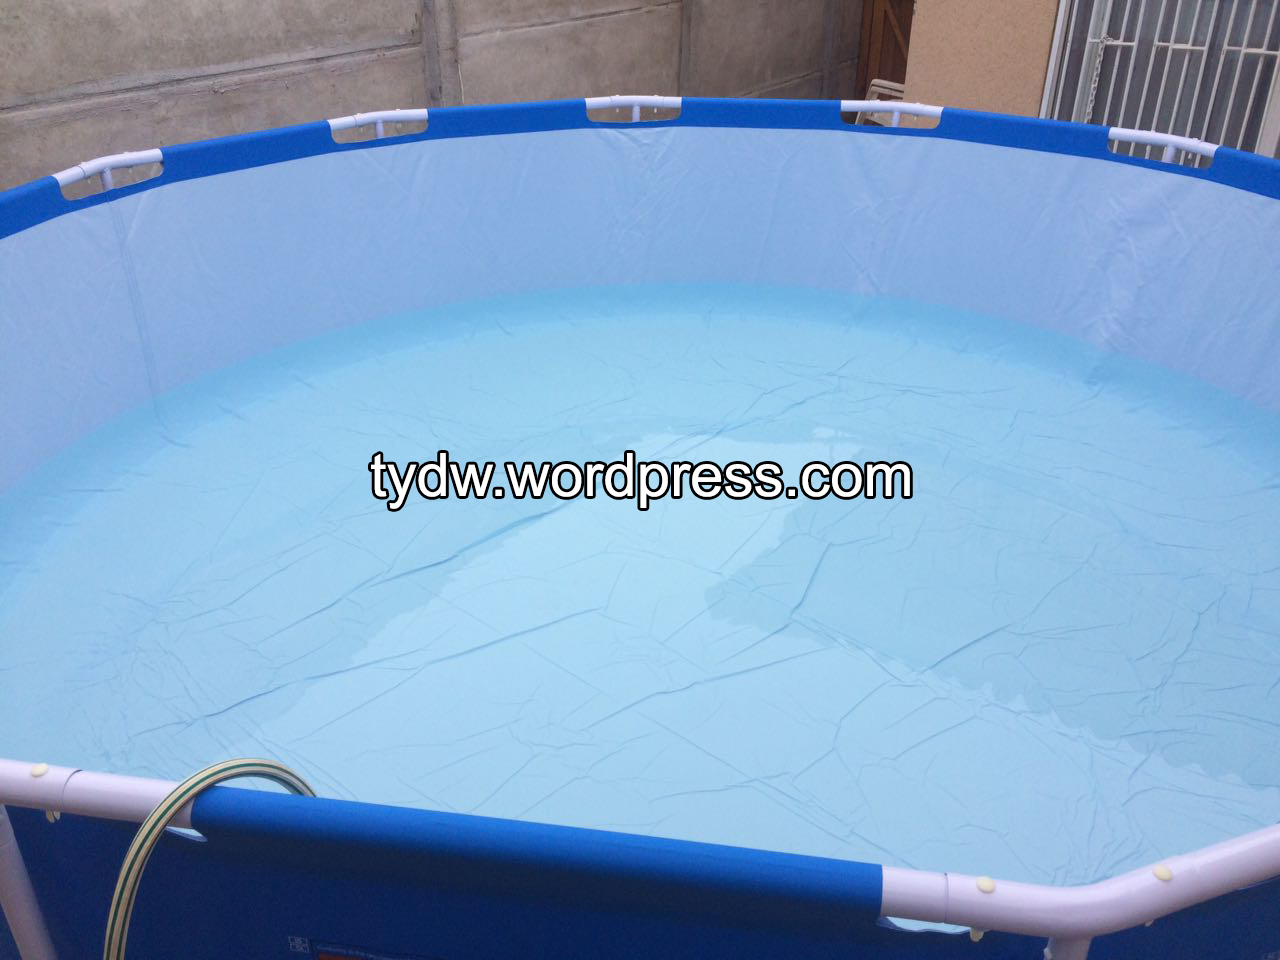 Instalacion de piscina bestway steel pro 366 x 100 blog for Mp3 para piscina